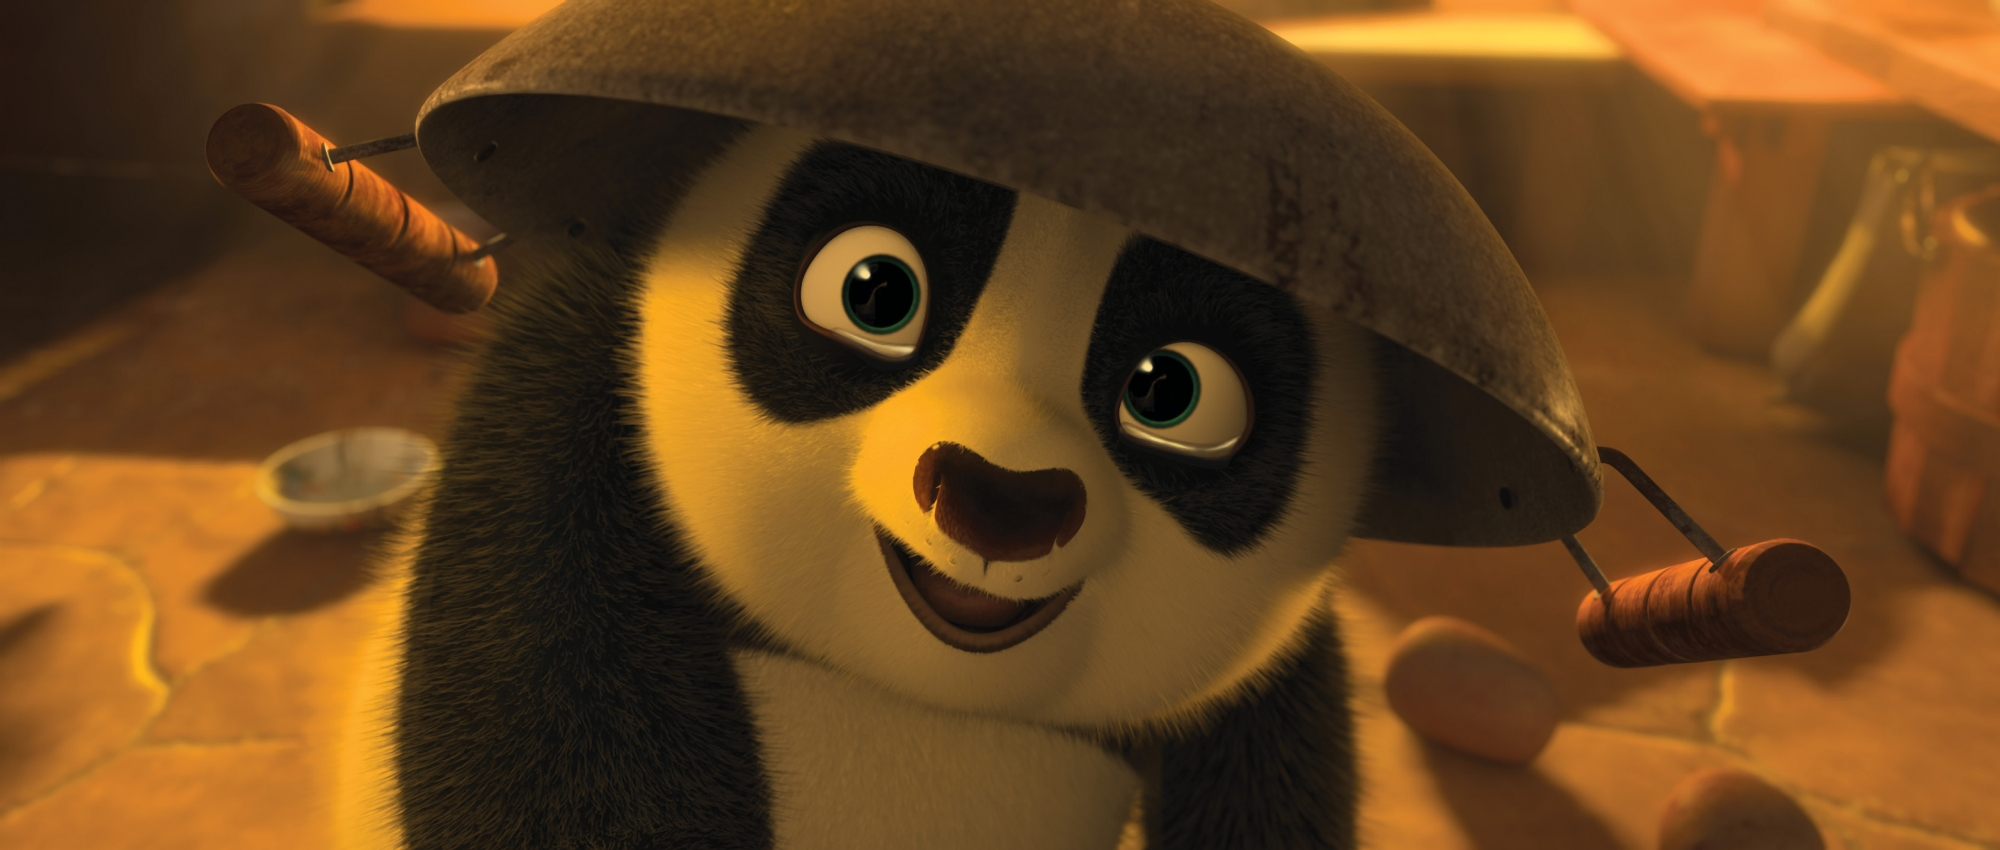 The Kung Fu Panda Images Baby Po HD Wallpaper And Background Photos